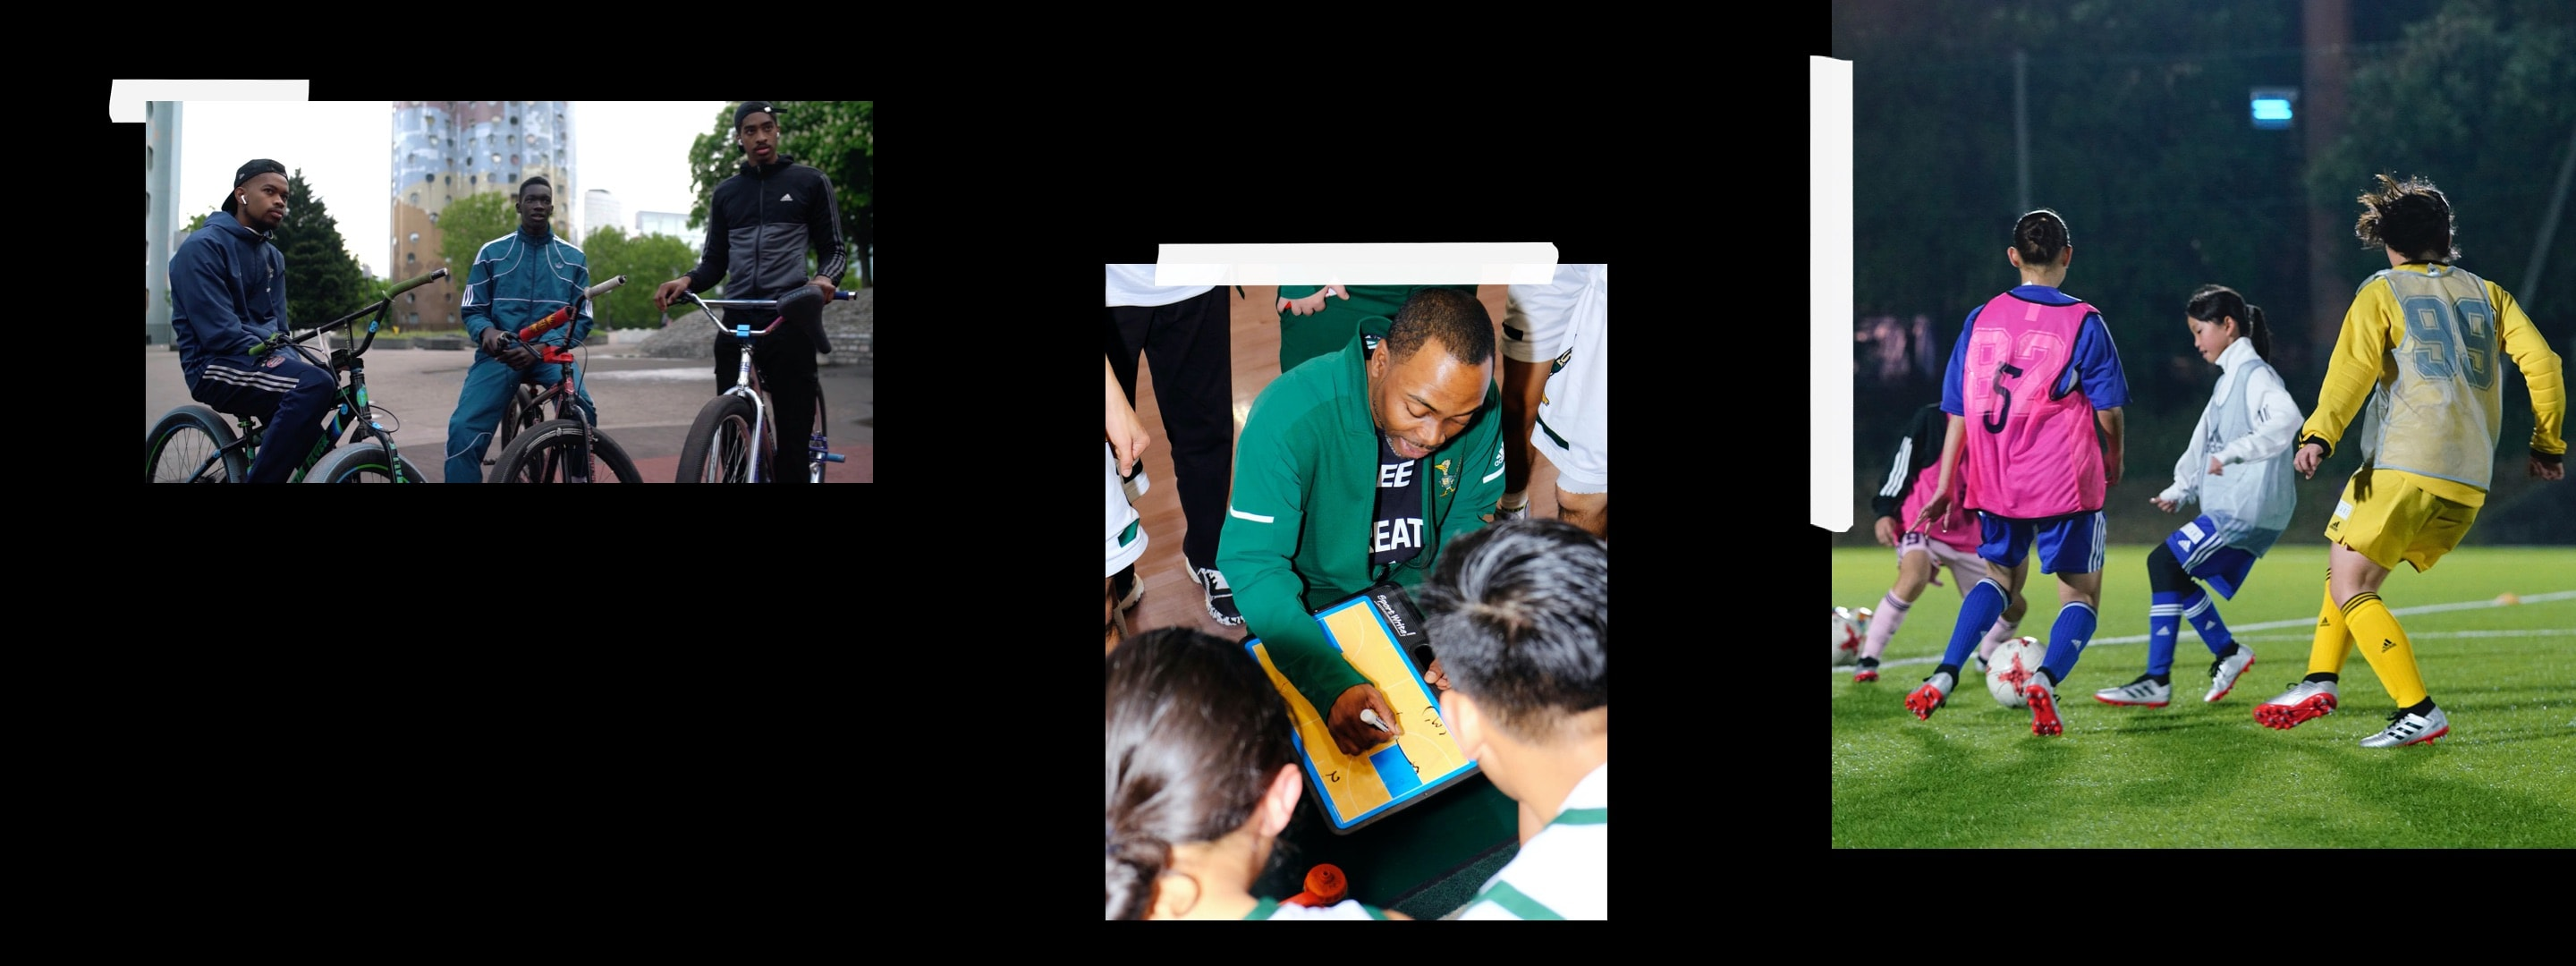 Image showing changemakers taking part in sport in Paris, Los Angeles and Tokyo